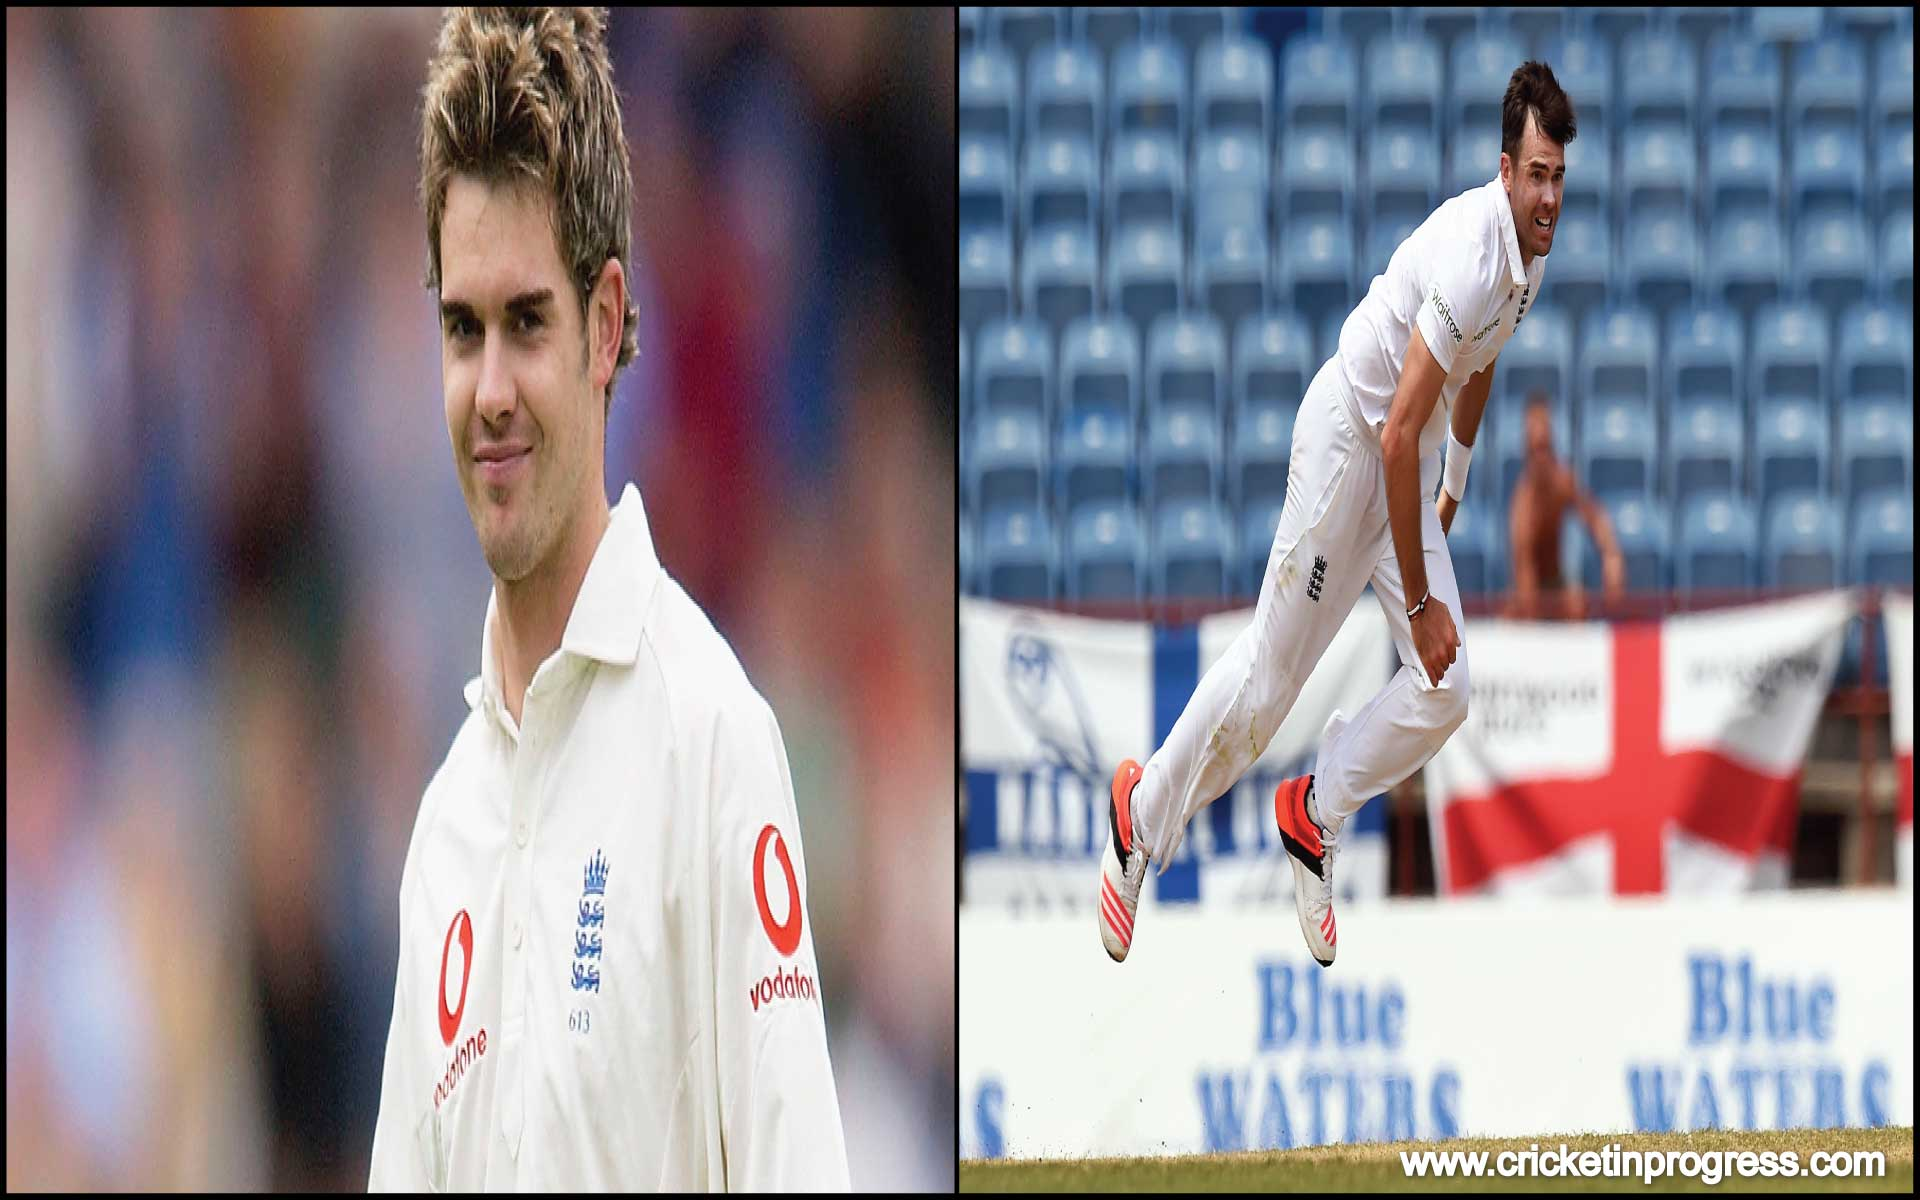 James Anderson The unsung fast bowling hero from England